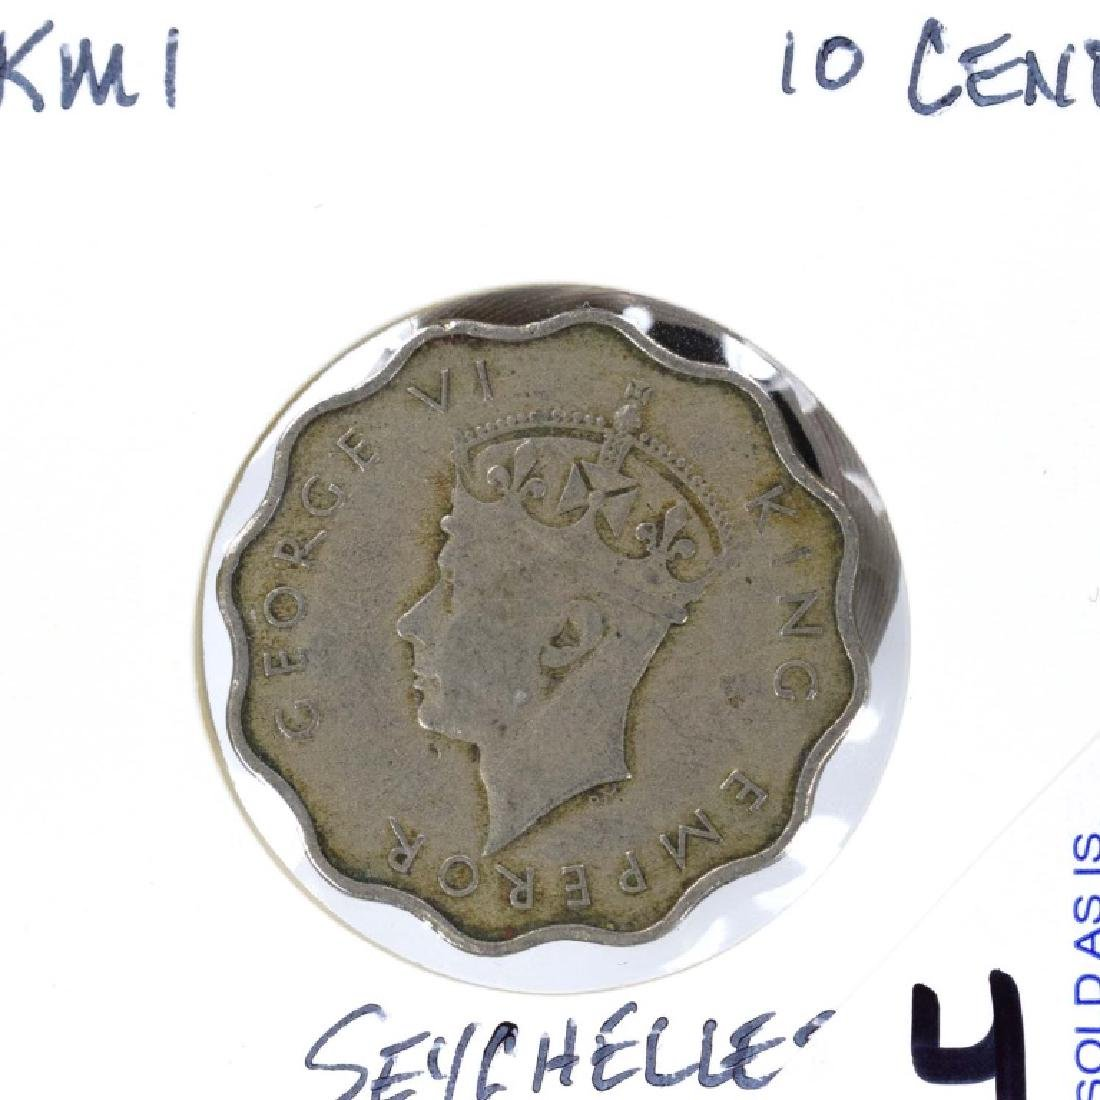 1939 Seychelles 10 Cents (KM#1) Seychelles 10 Cent Coin